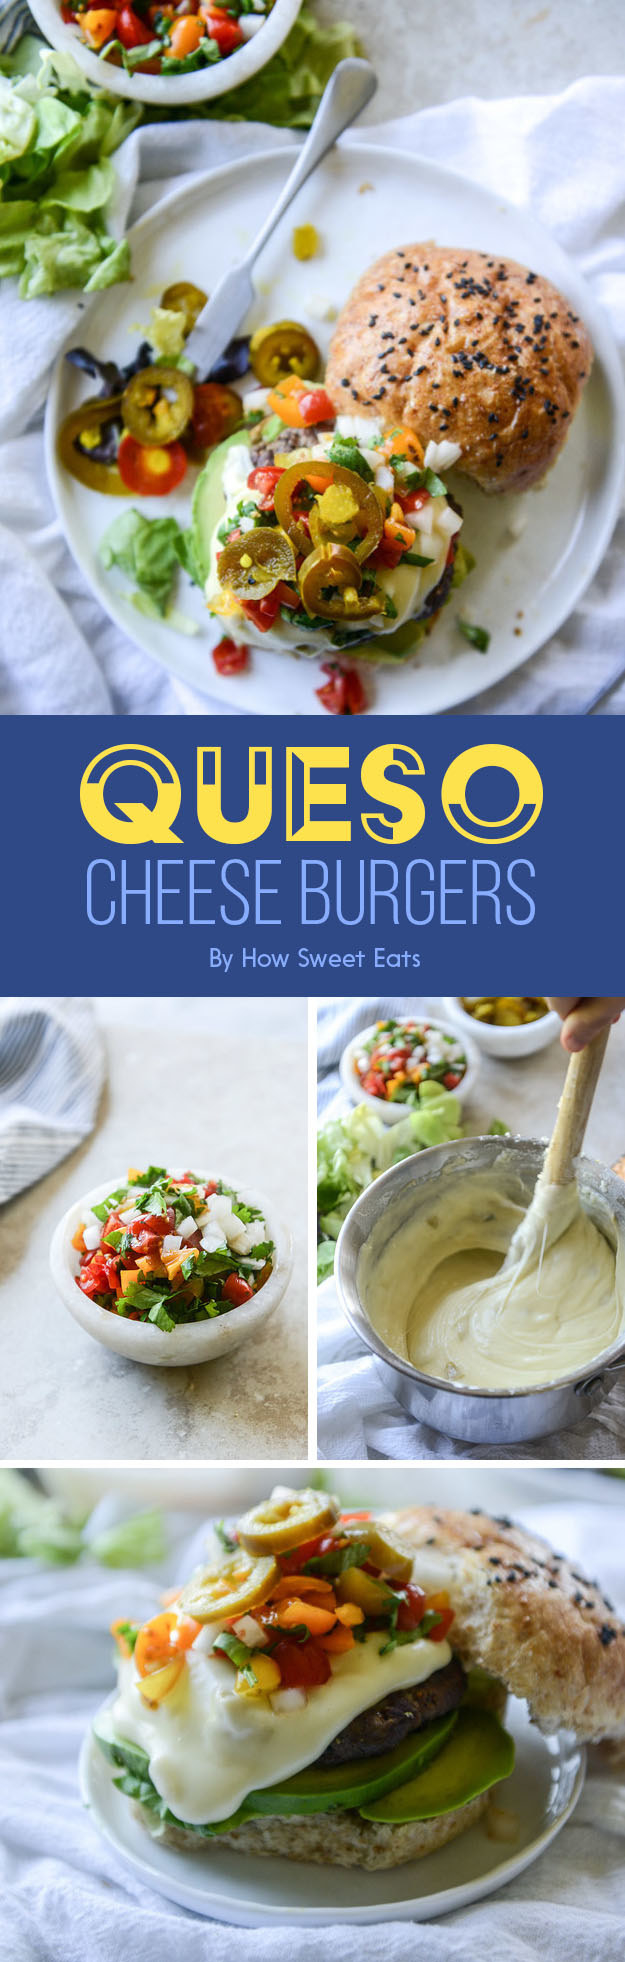 Queso Cheese Burgers